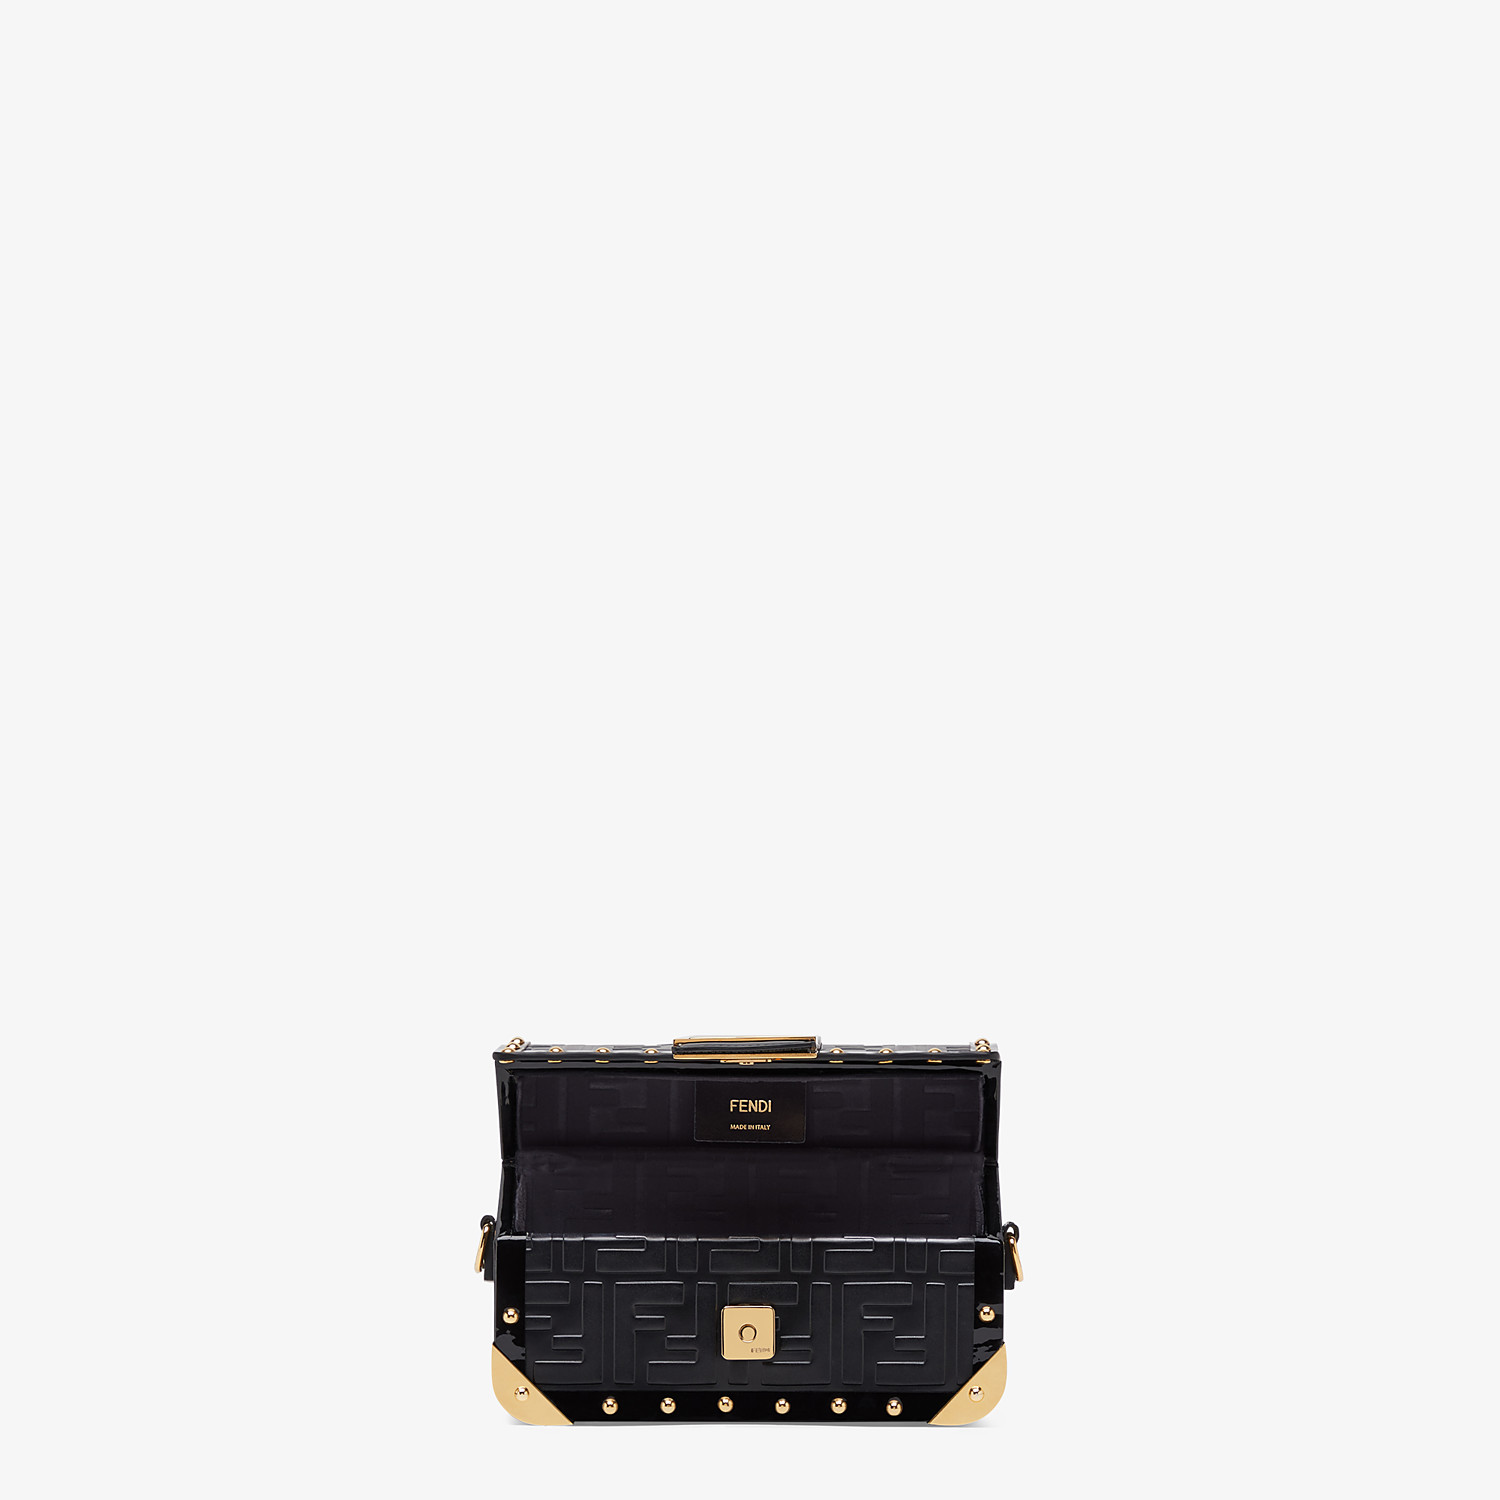 FENDI BAGUETTE TRUNK MINI - Black leather bag - view 4 detail